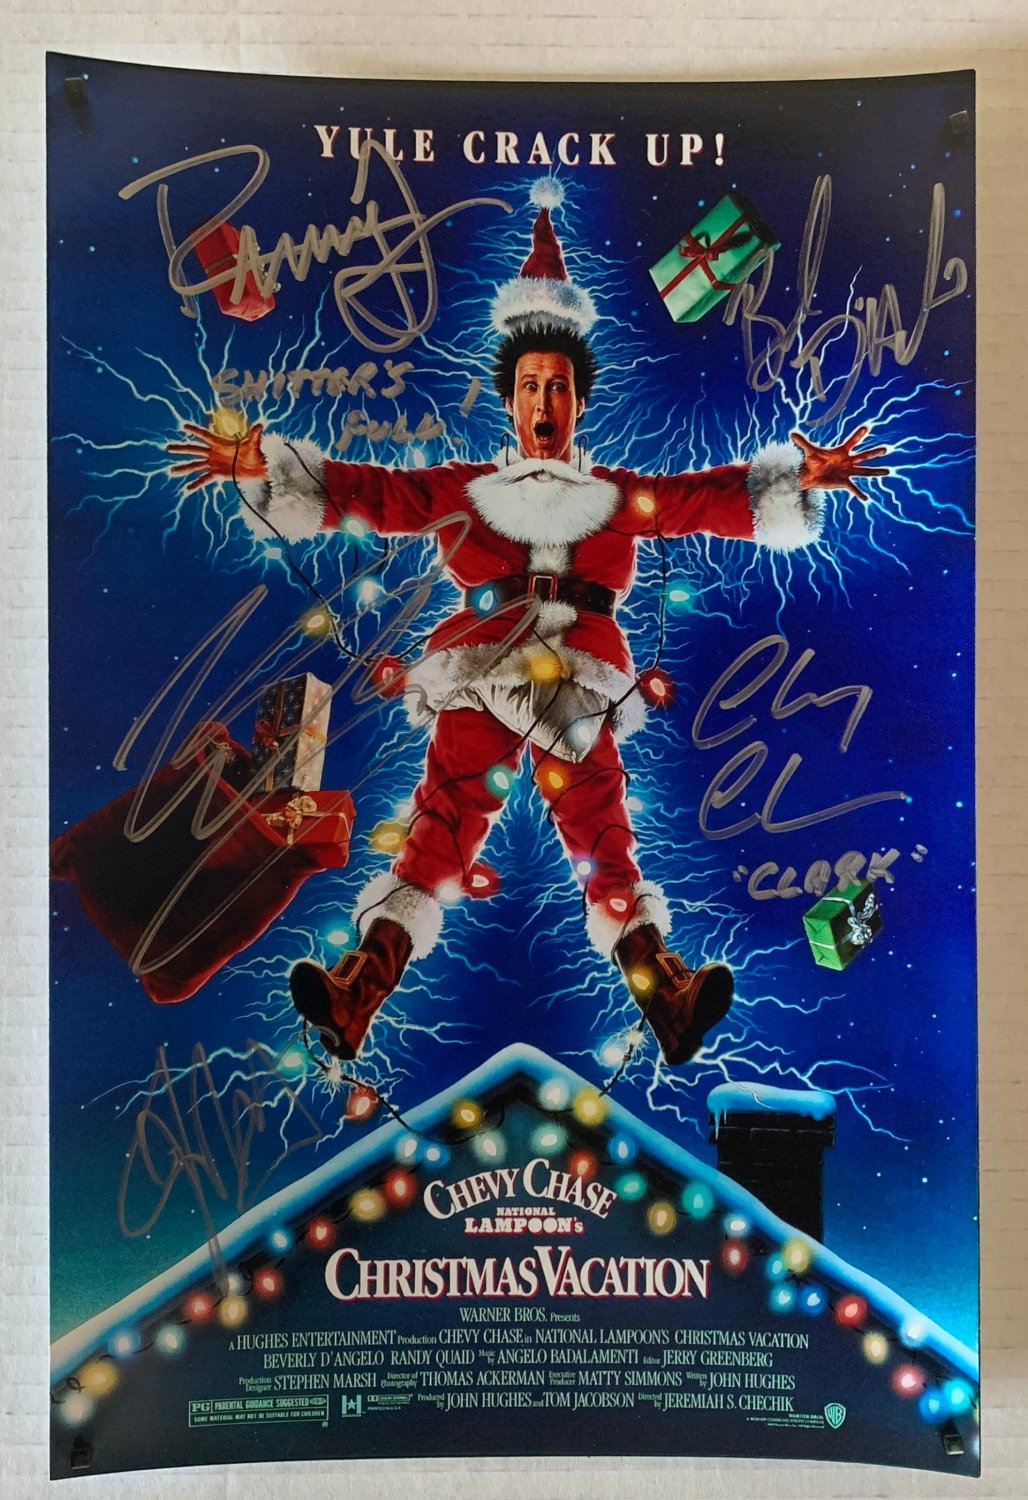 National Lampoons Christmas Vacation cast signed autographed 8x12 photo Chevy Chase autographs